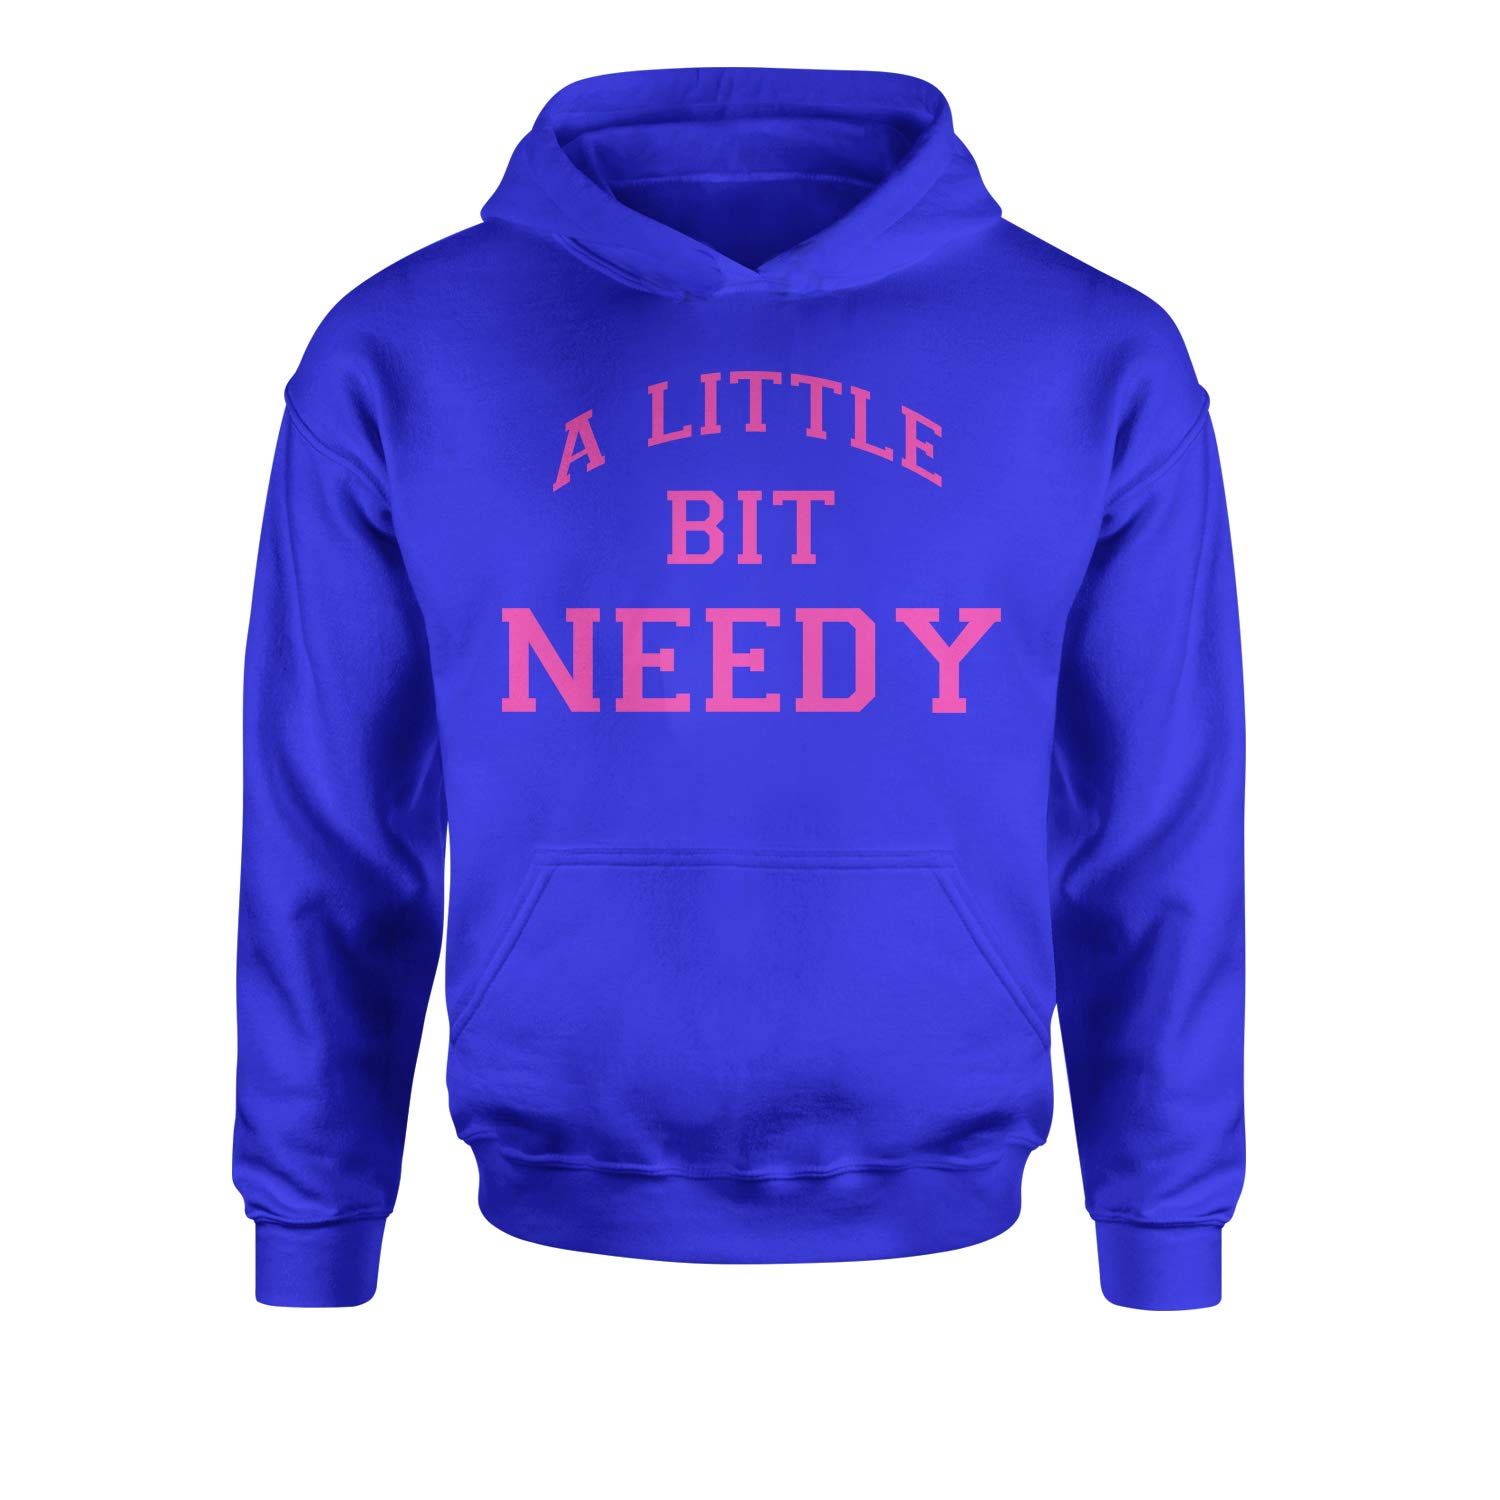 Expression Tees A Little Bit Needy Youth-Sized Hoodie